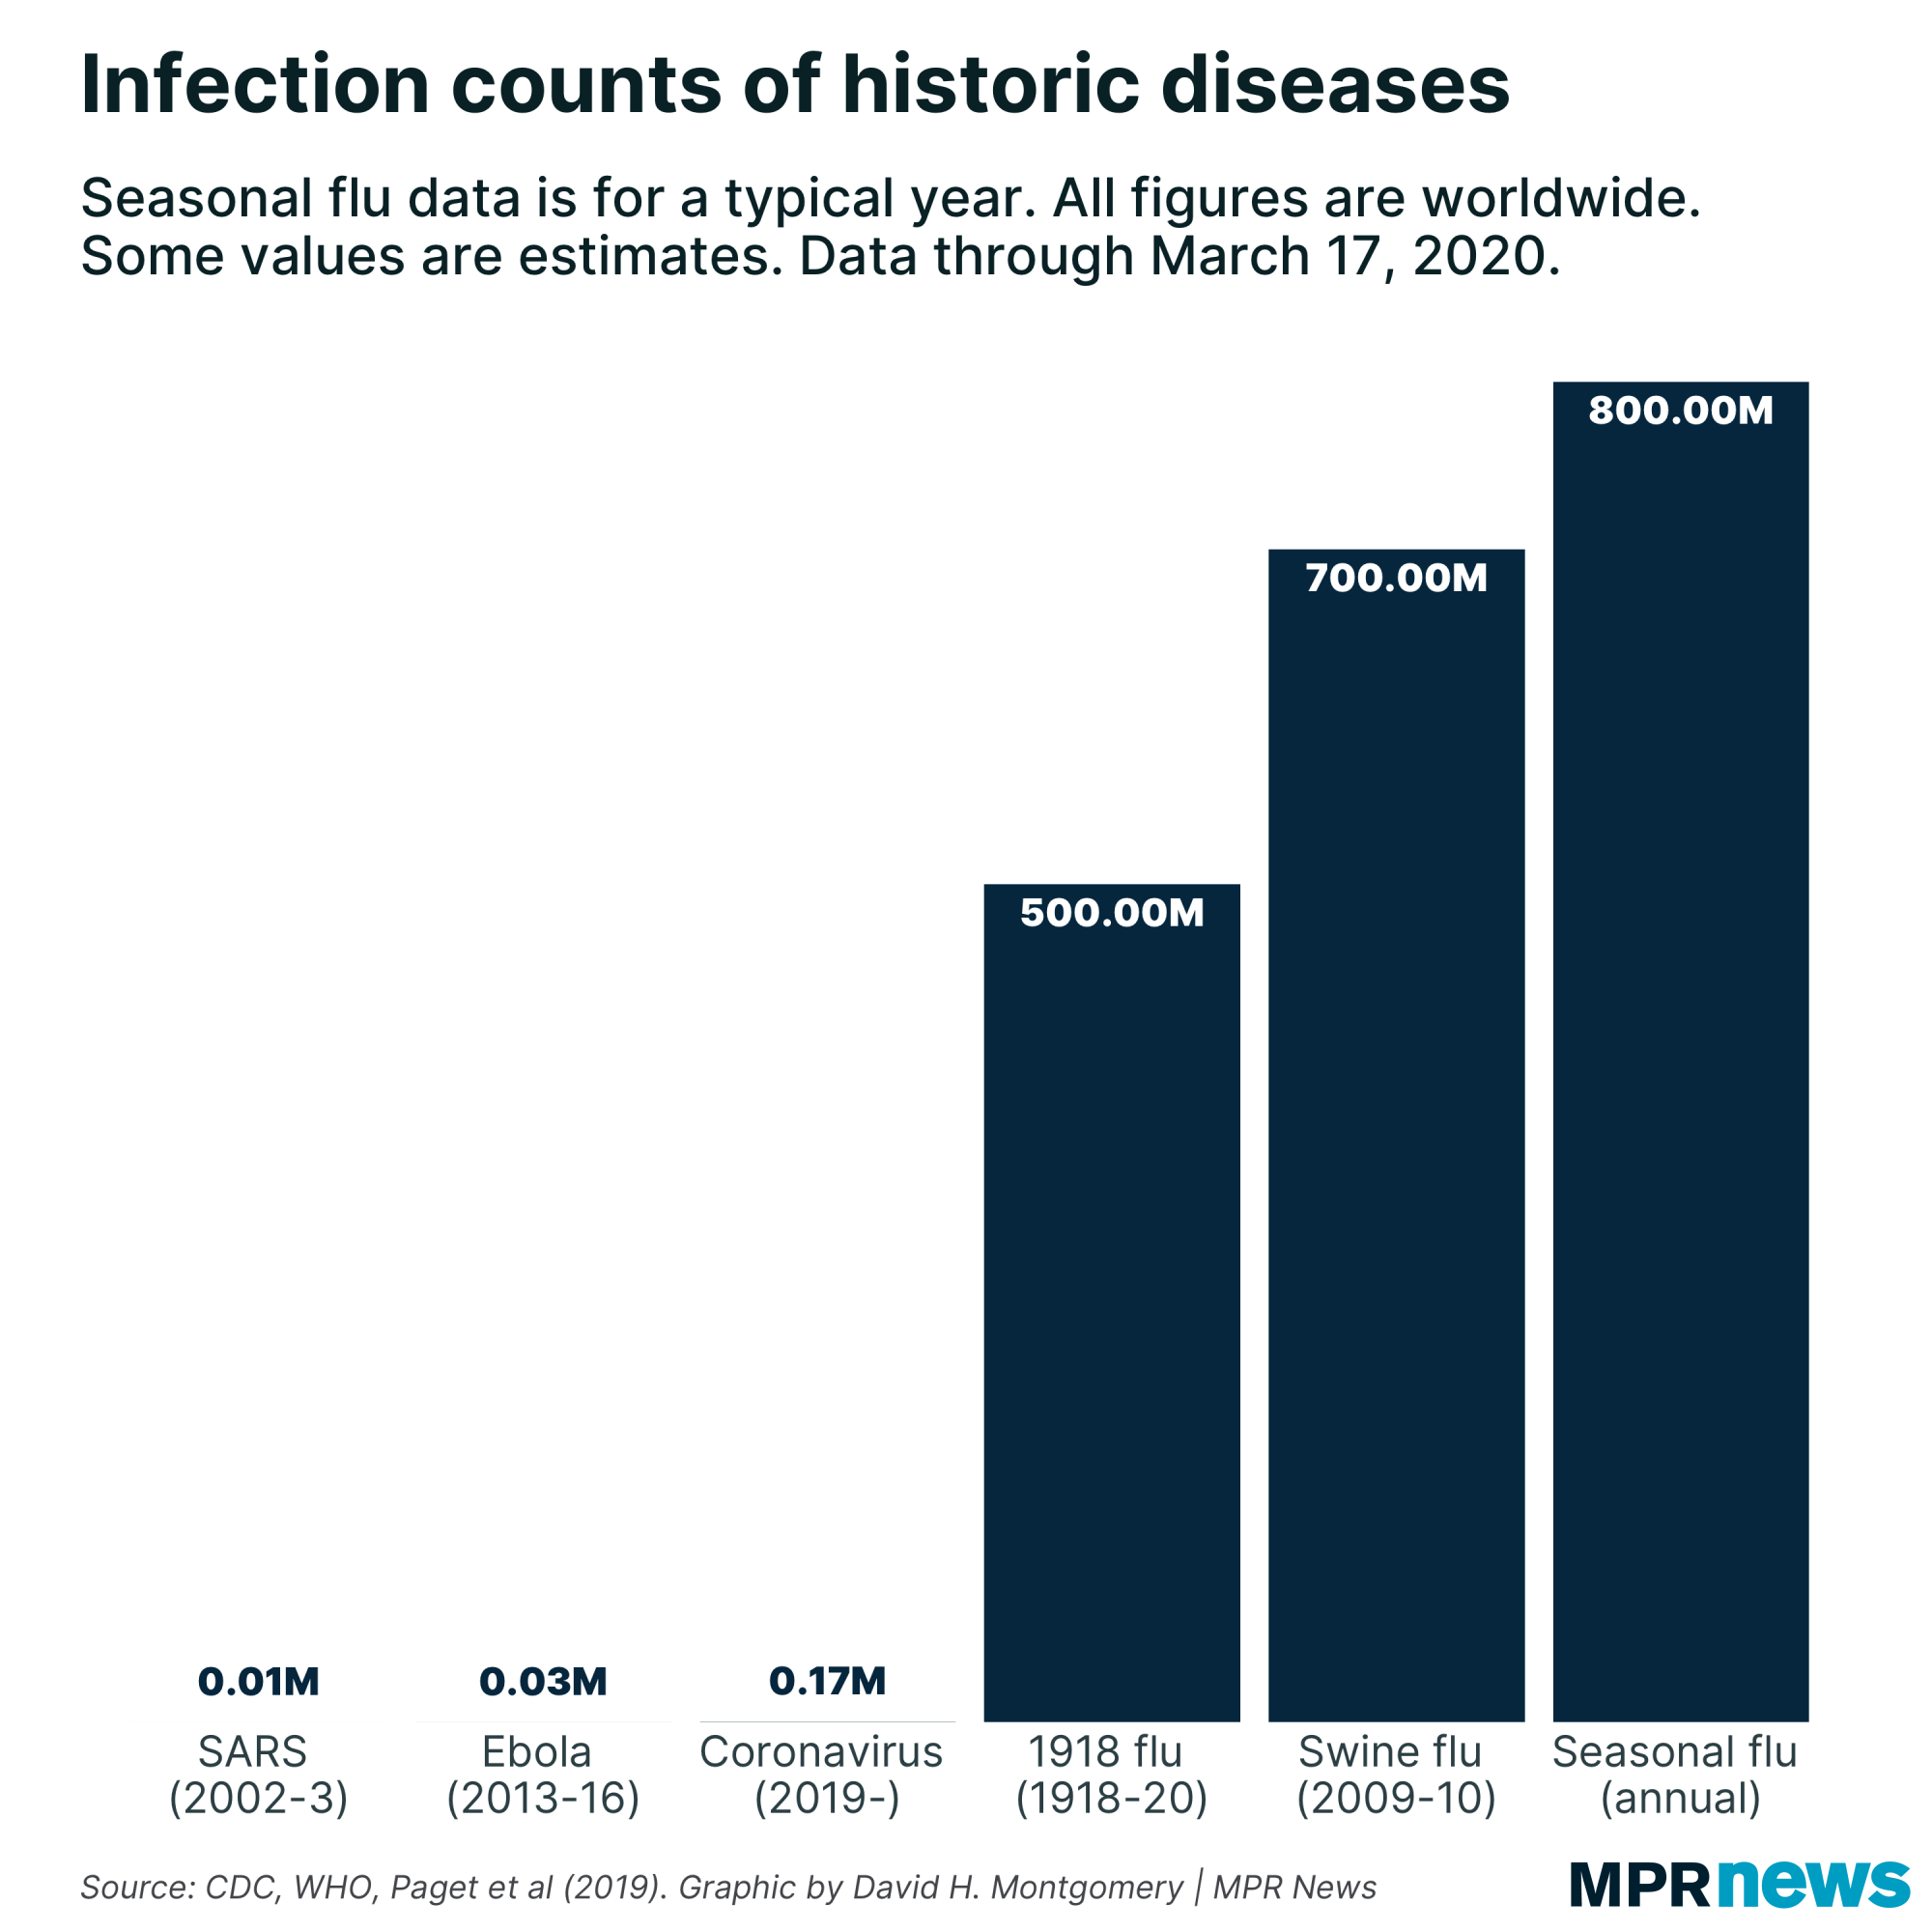 Infection counts of historic diseases